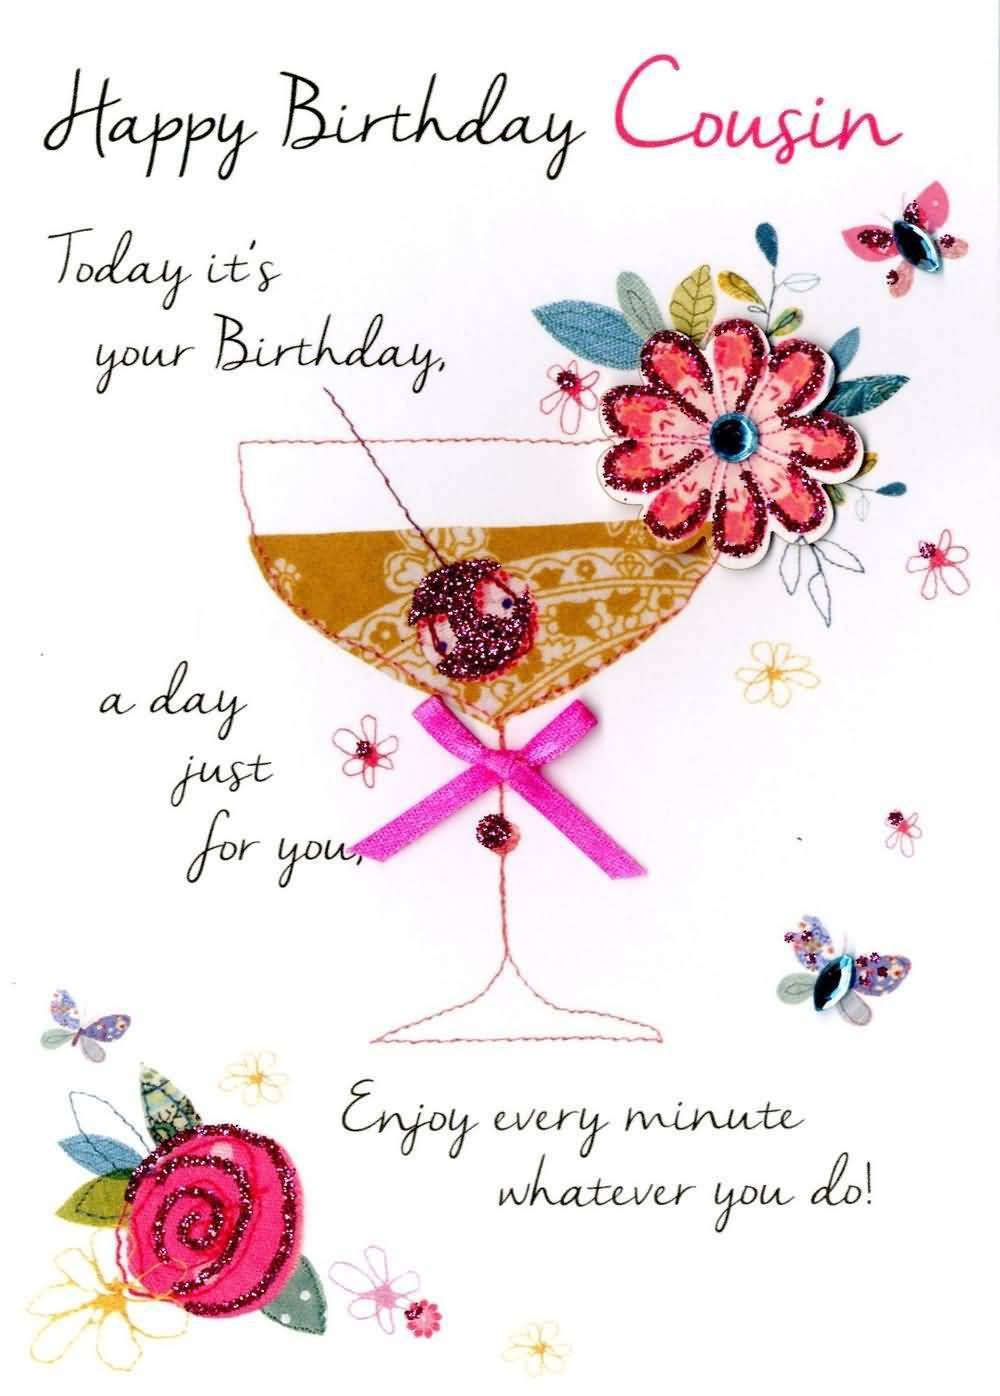 Cousin Birthday Quotes  31 Amazing Cousin Birthday Wishes Greetings & Graphics